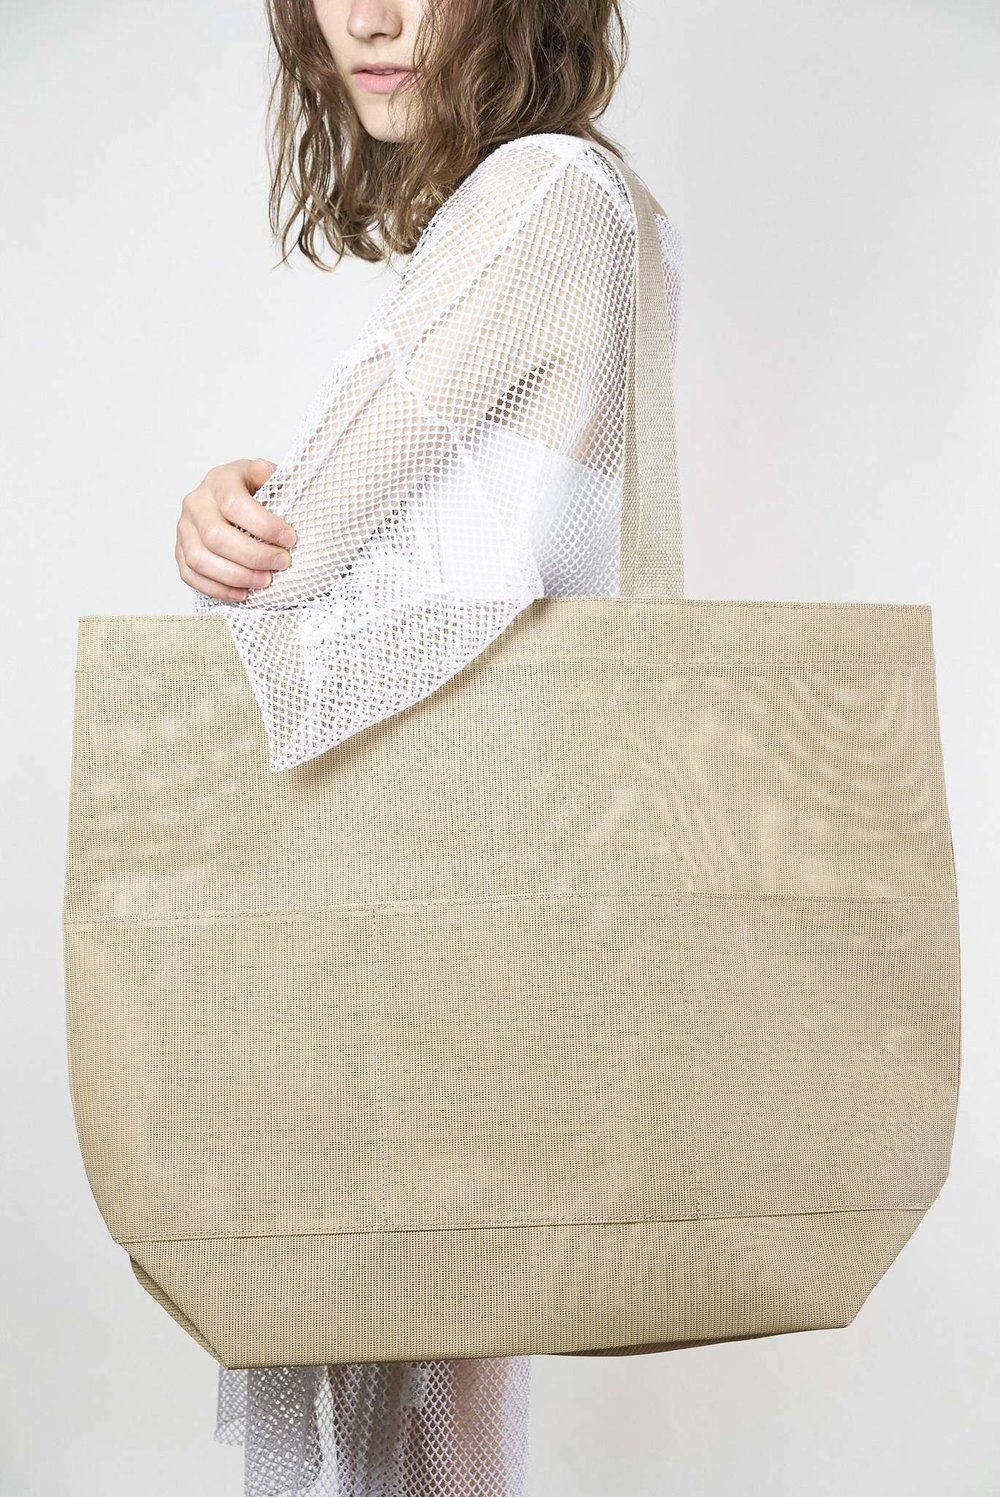 A utilitarian tote for traveling, hauling your laptop around, a trip to the beach…